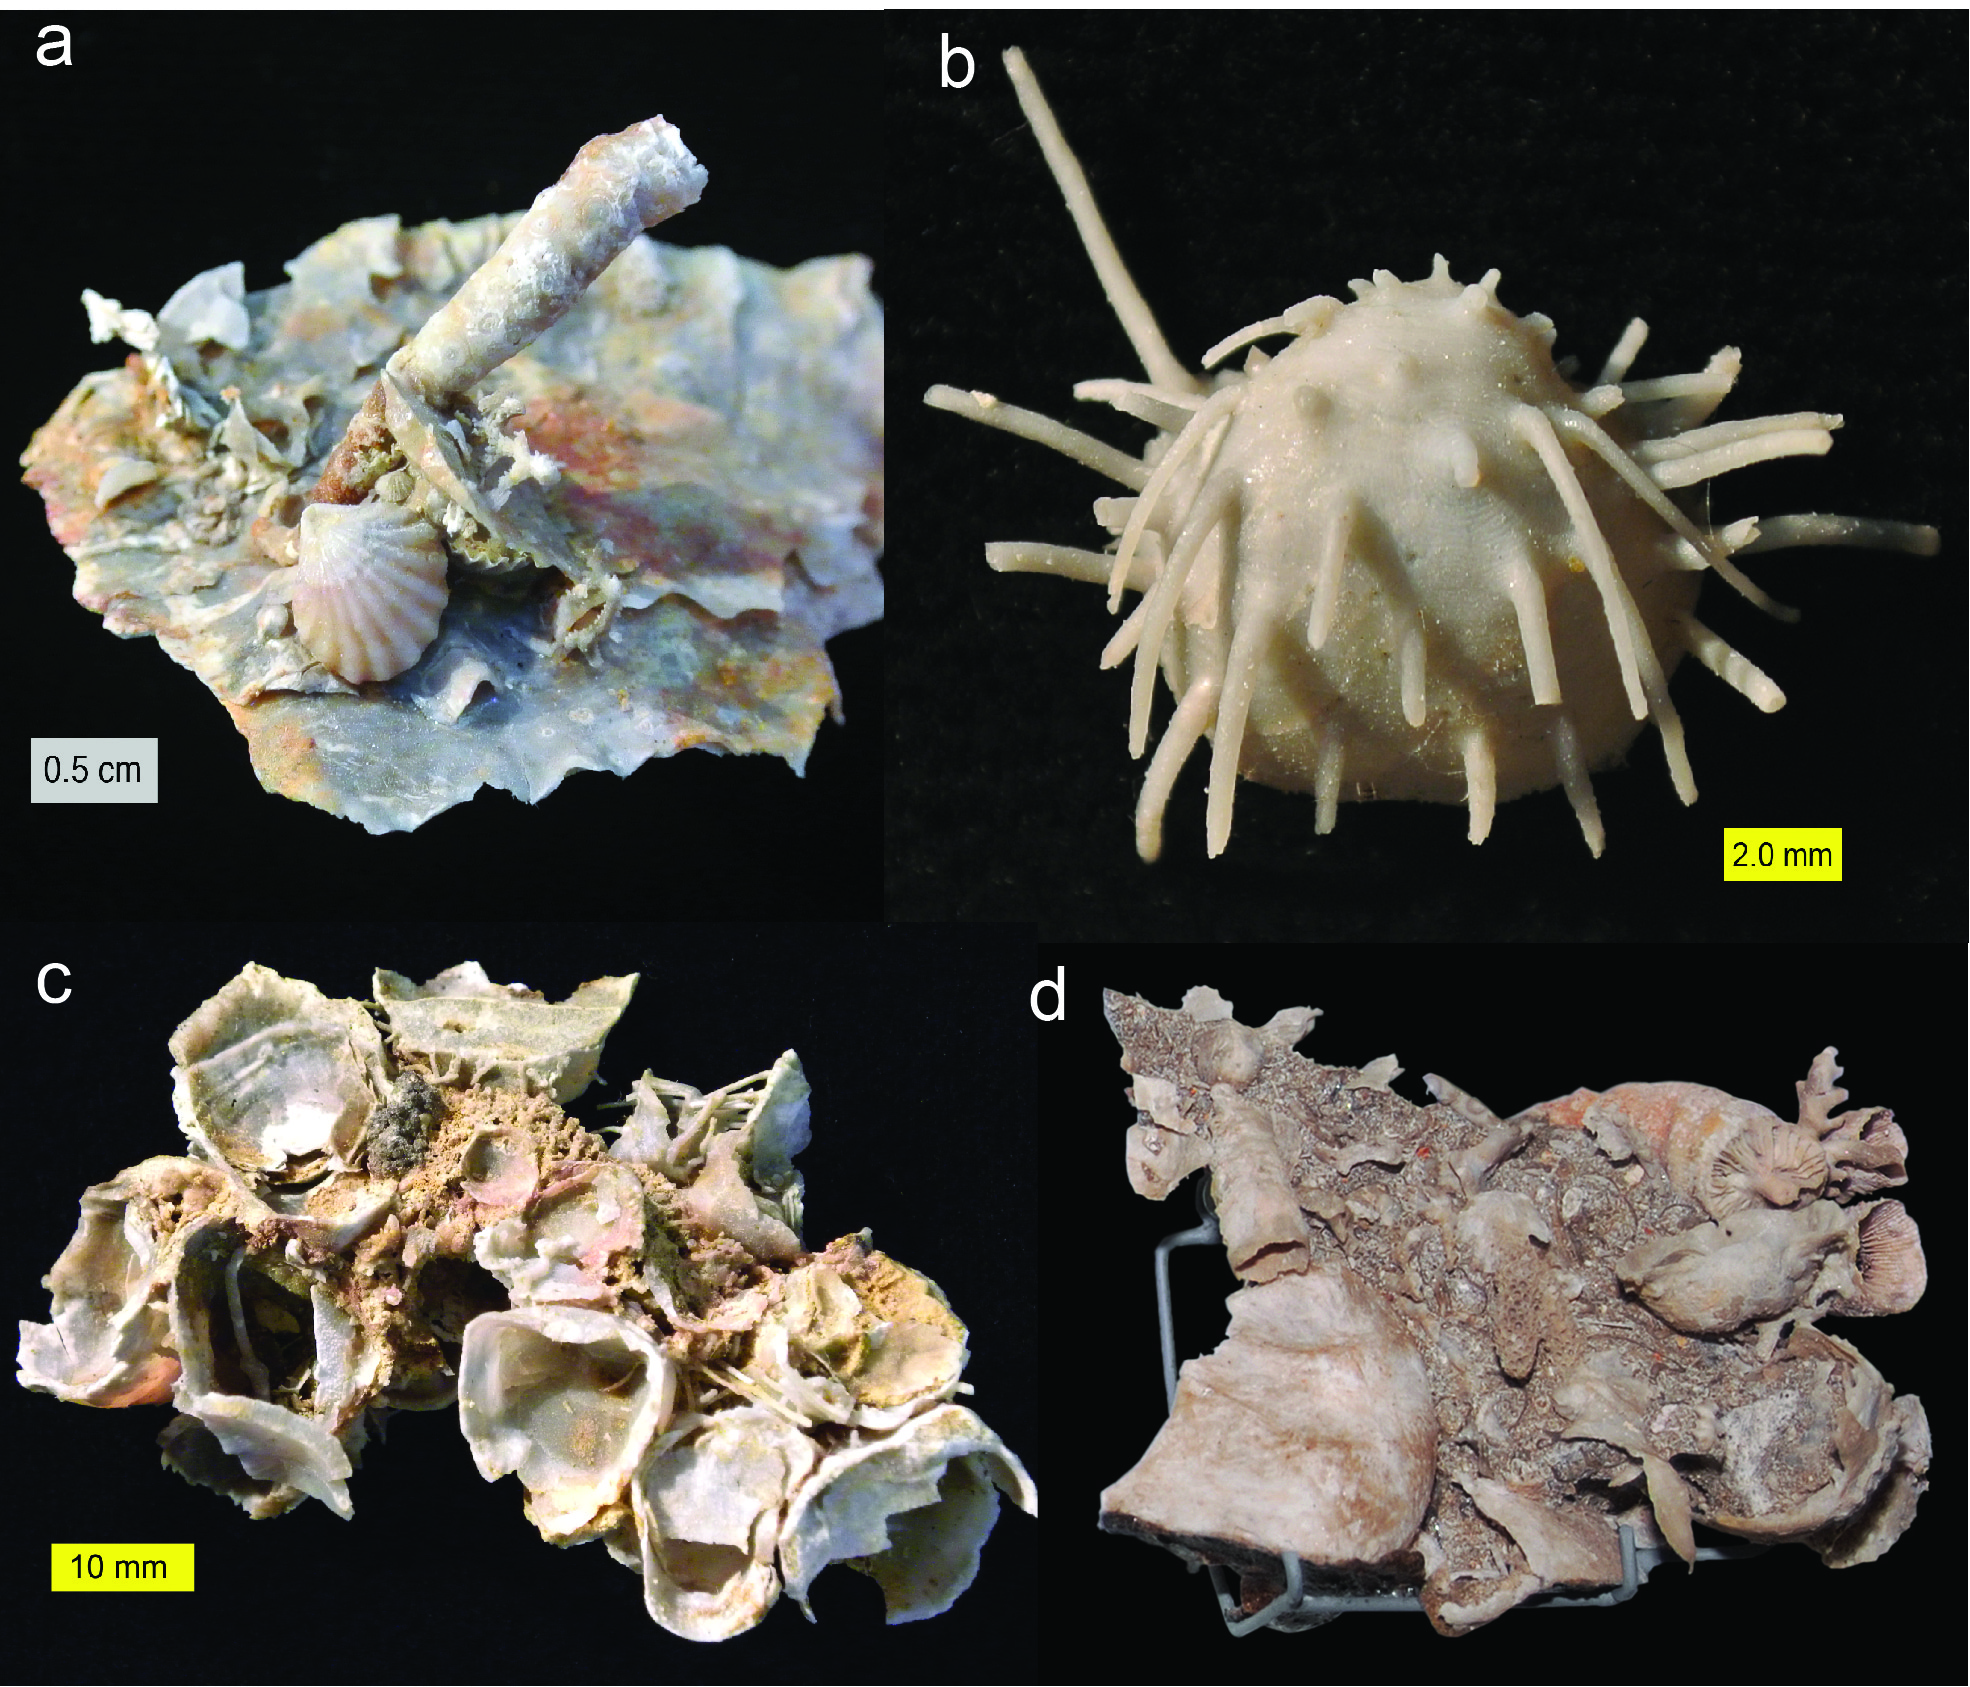 Fossils from the Capitan Formation of the Glass Mountains